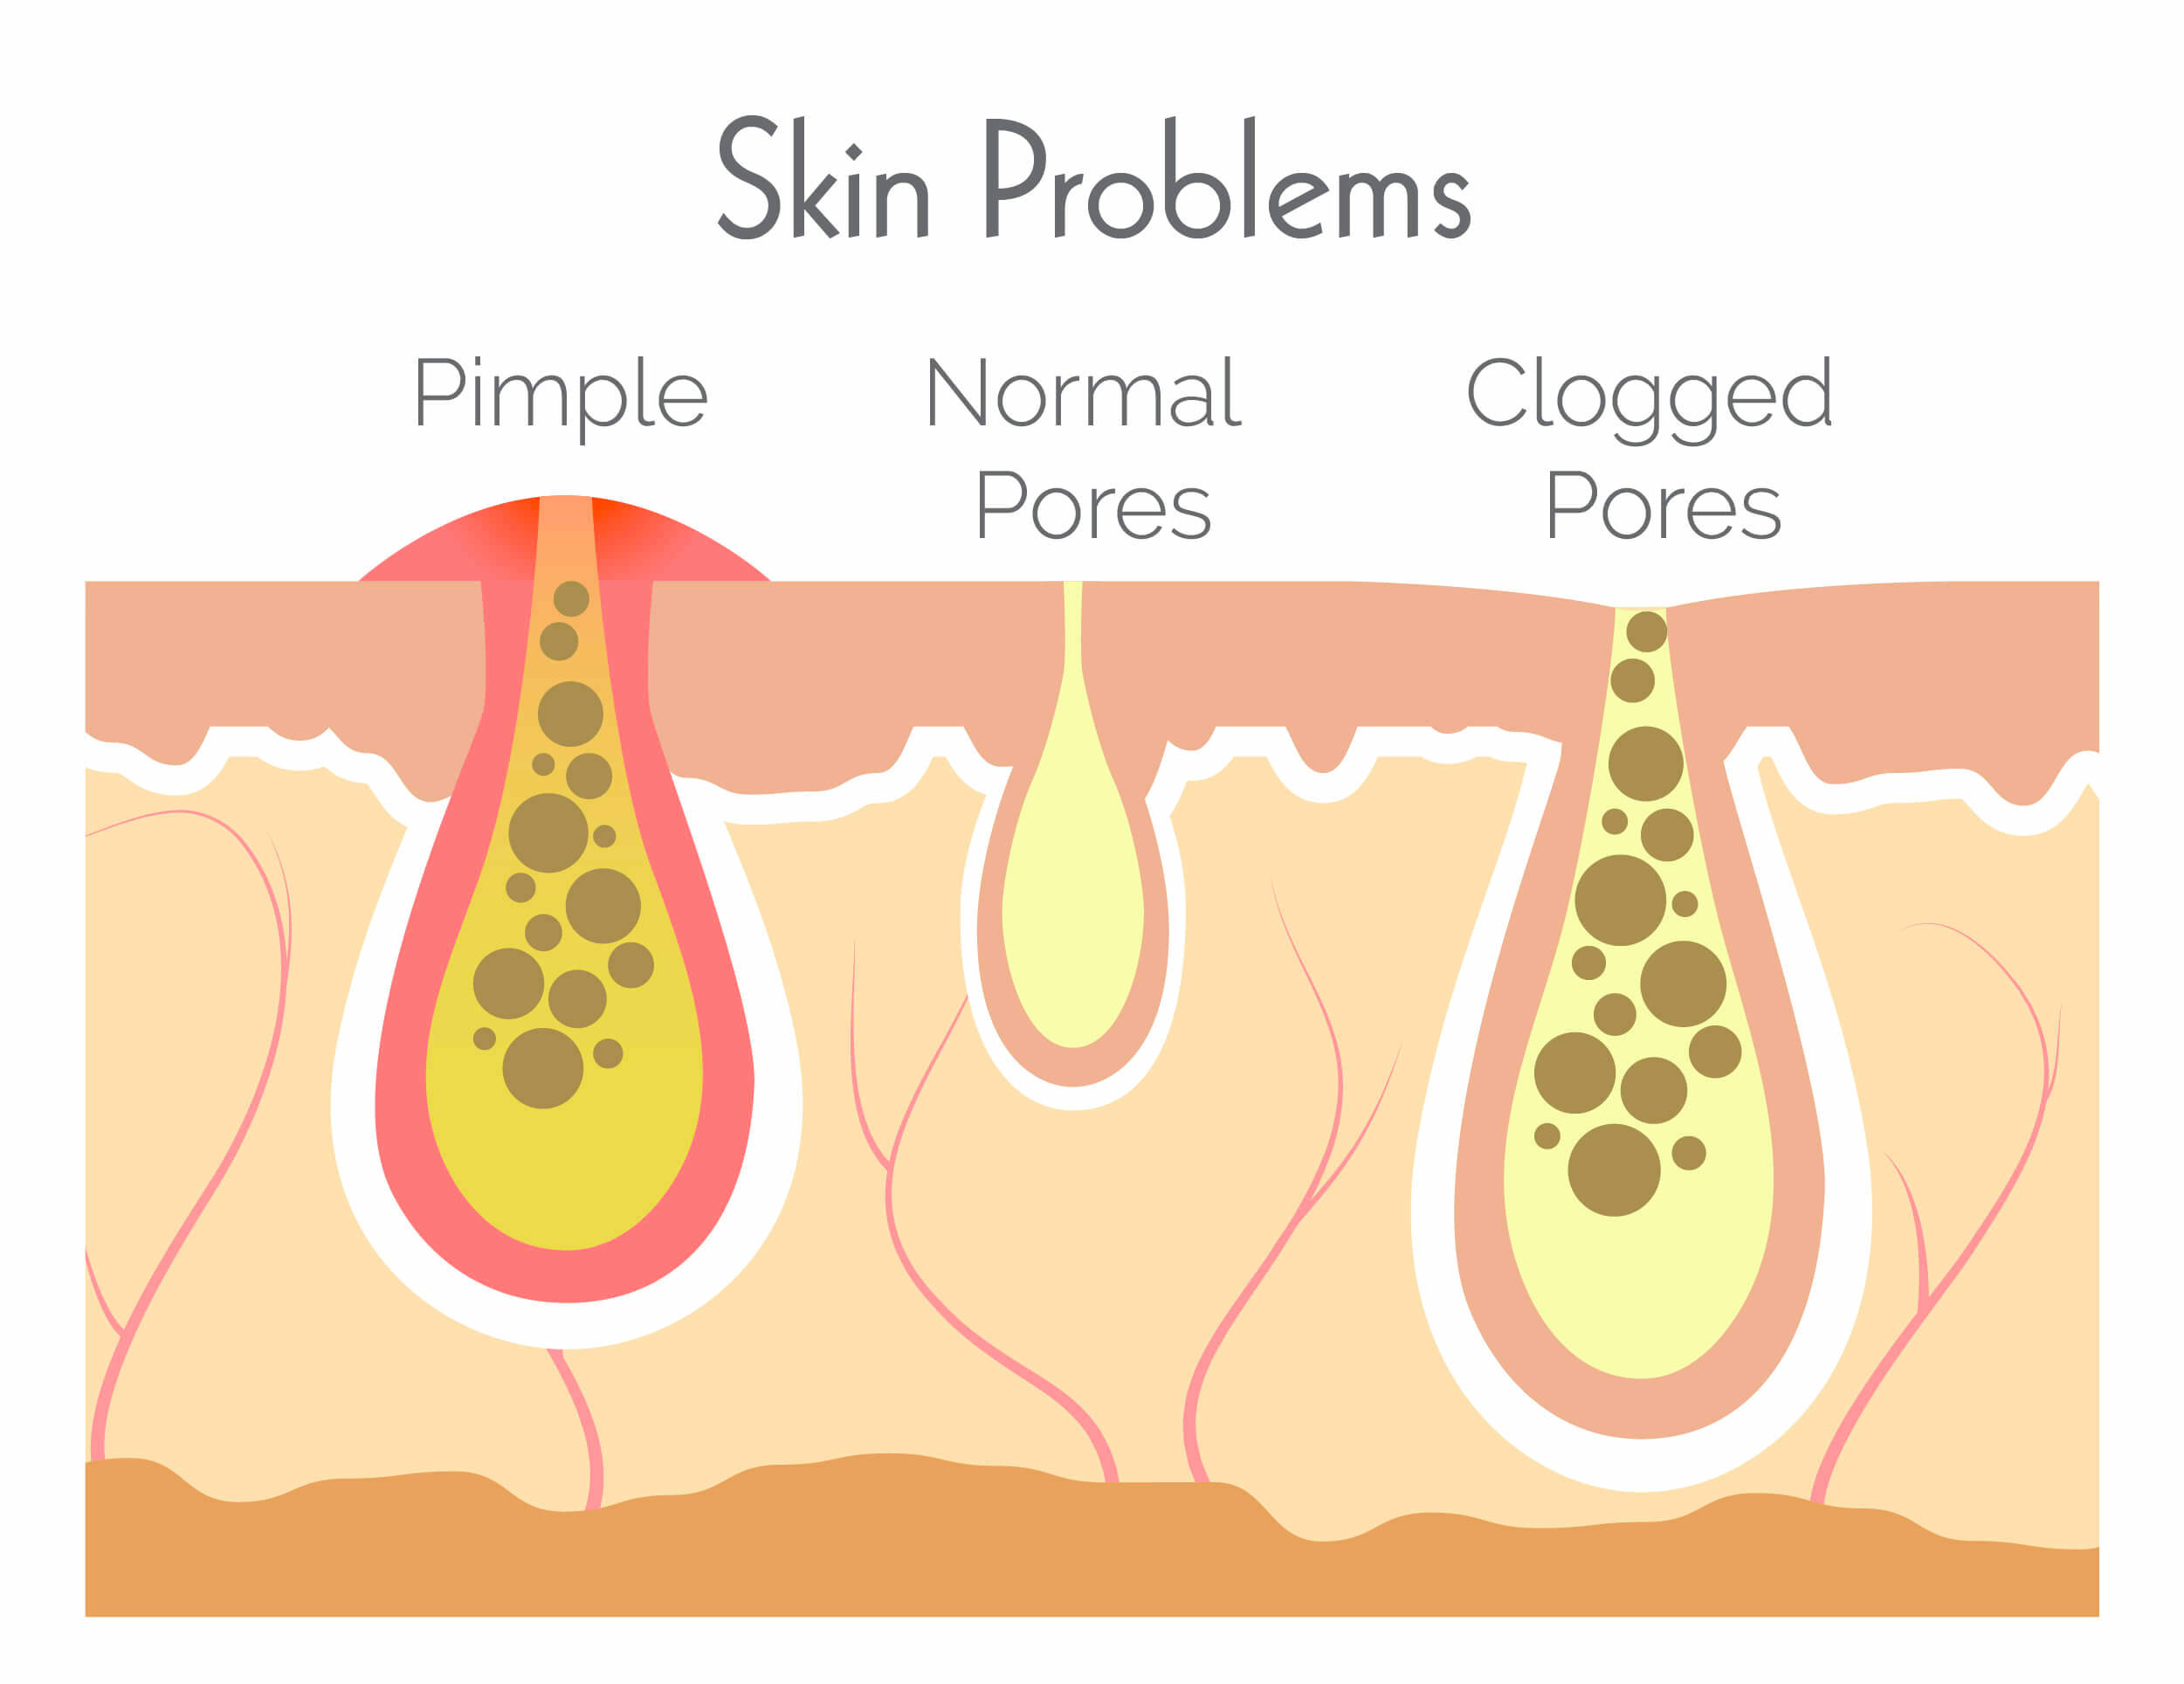 Infographic on skin problems and clogged pores